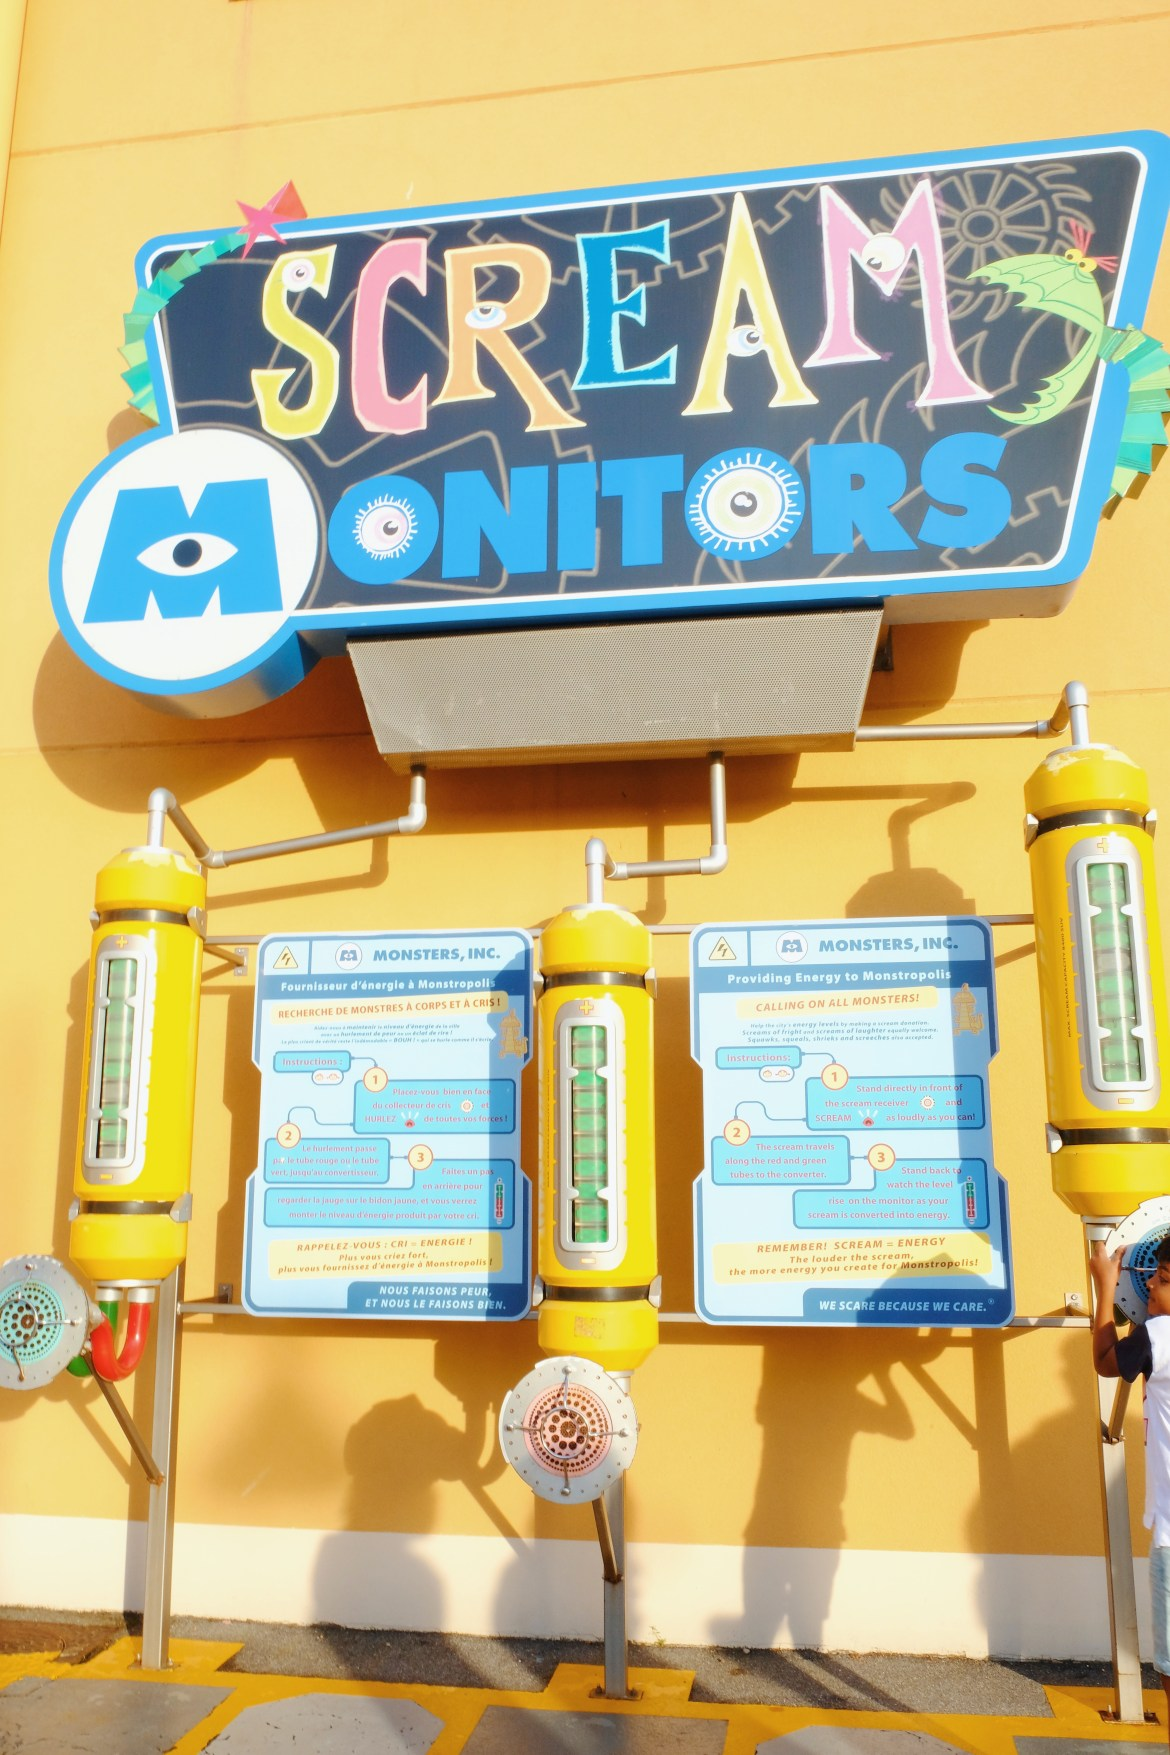 Disney scream monitors monters inc